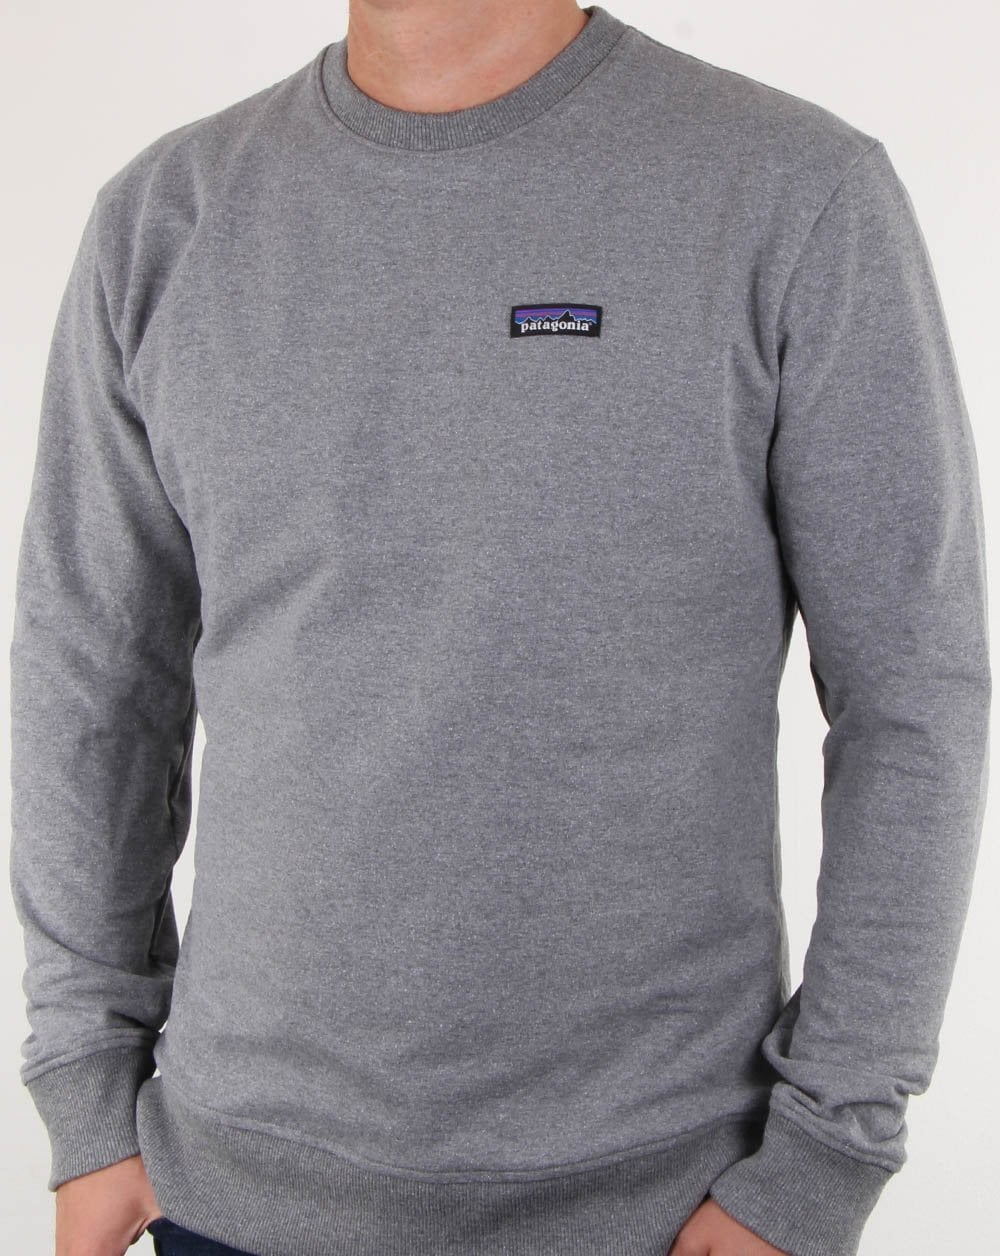 327a025879e Patagonia Patagonia P-6 Label Uprisal Crew Sweatshirt Gravel Heather Grey